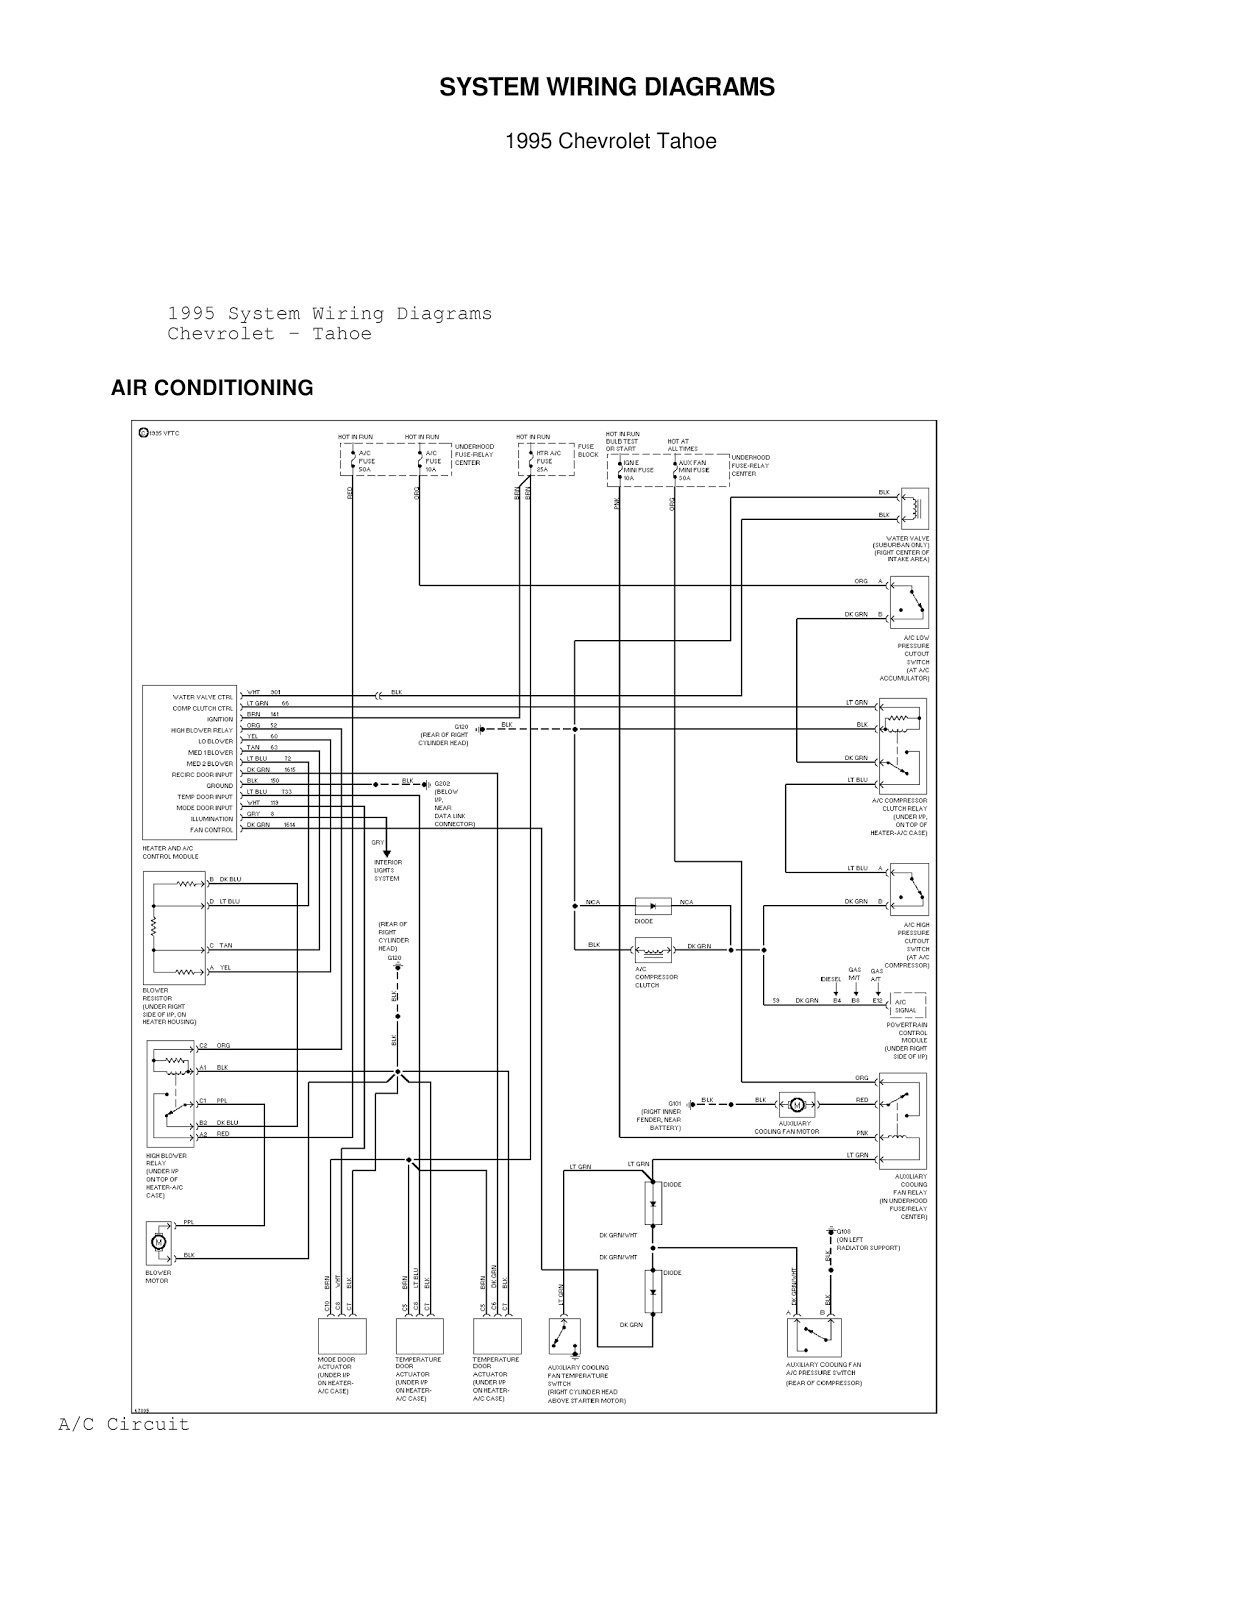 1995 chevrolet tahoe system wiring diagrams air conditioning circuits schematic wiring